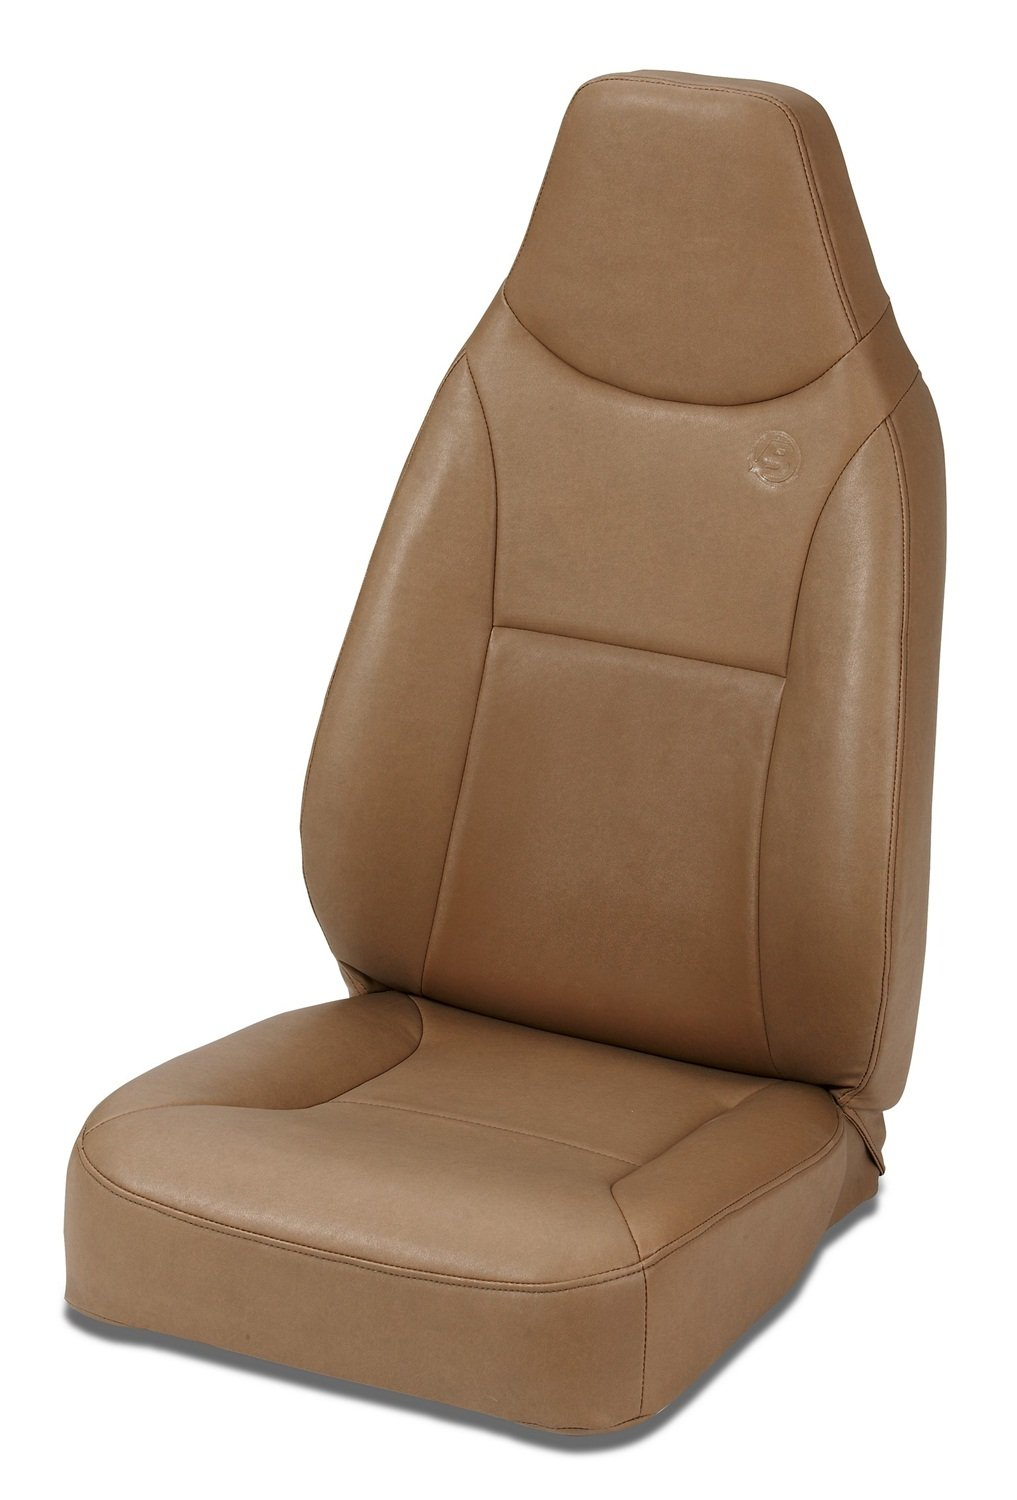 Bestop 39436-37 TrailMax II Spice Front High Back Vinyl All-Vinyl Single Jeep Seat for 1976-2006 Jeep CJ and Wrangler